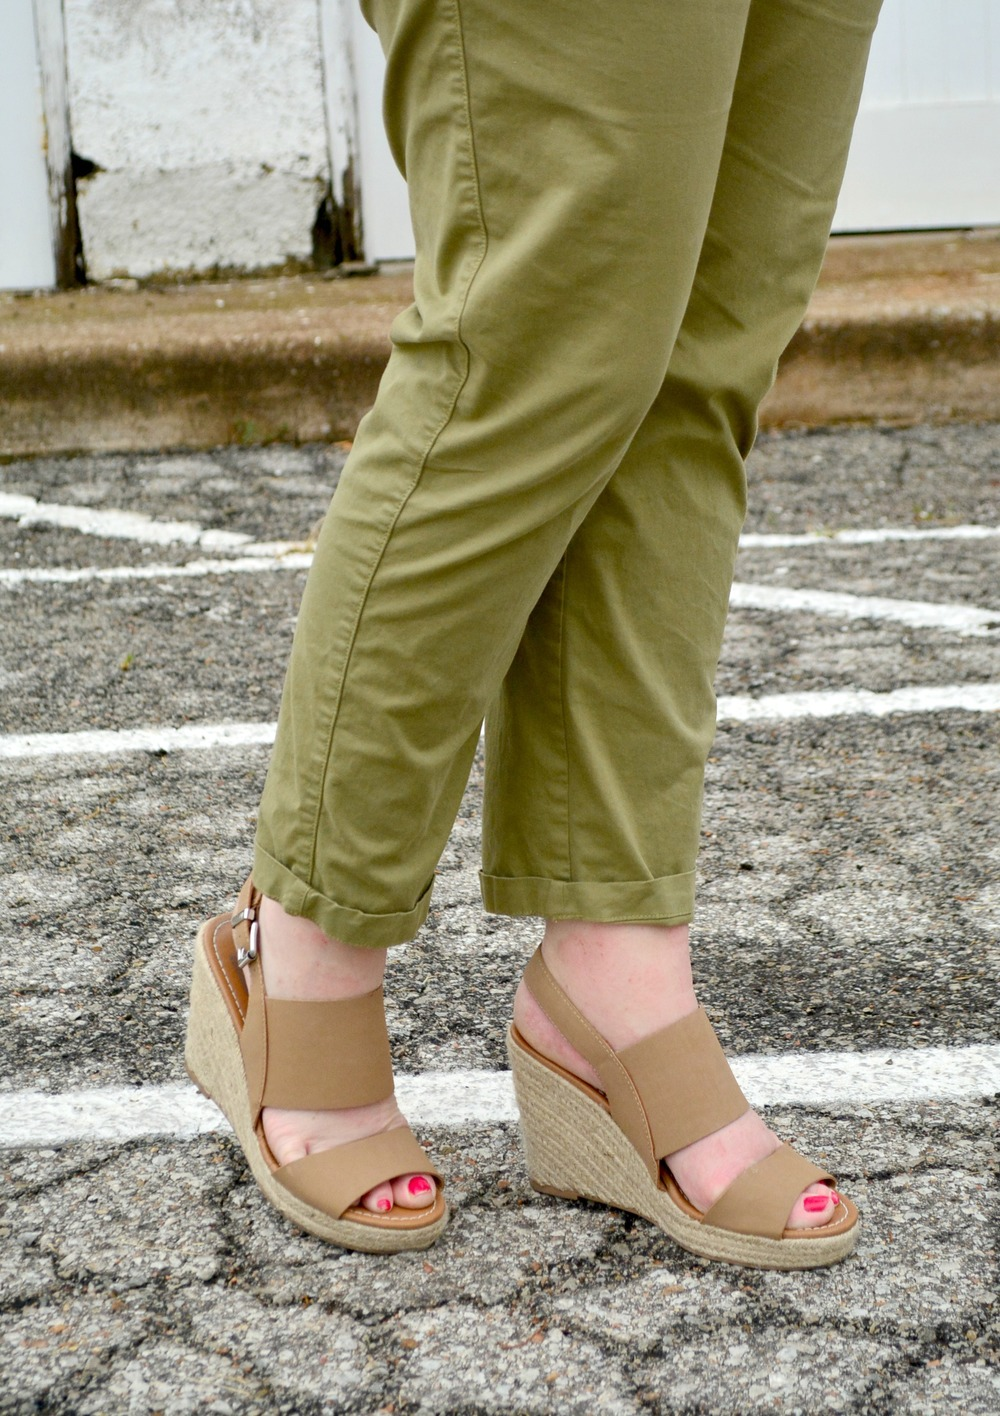 Dolce Vita for Target wedges and army green pants for summer